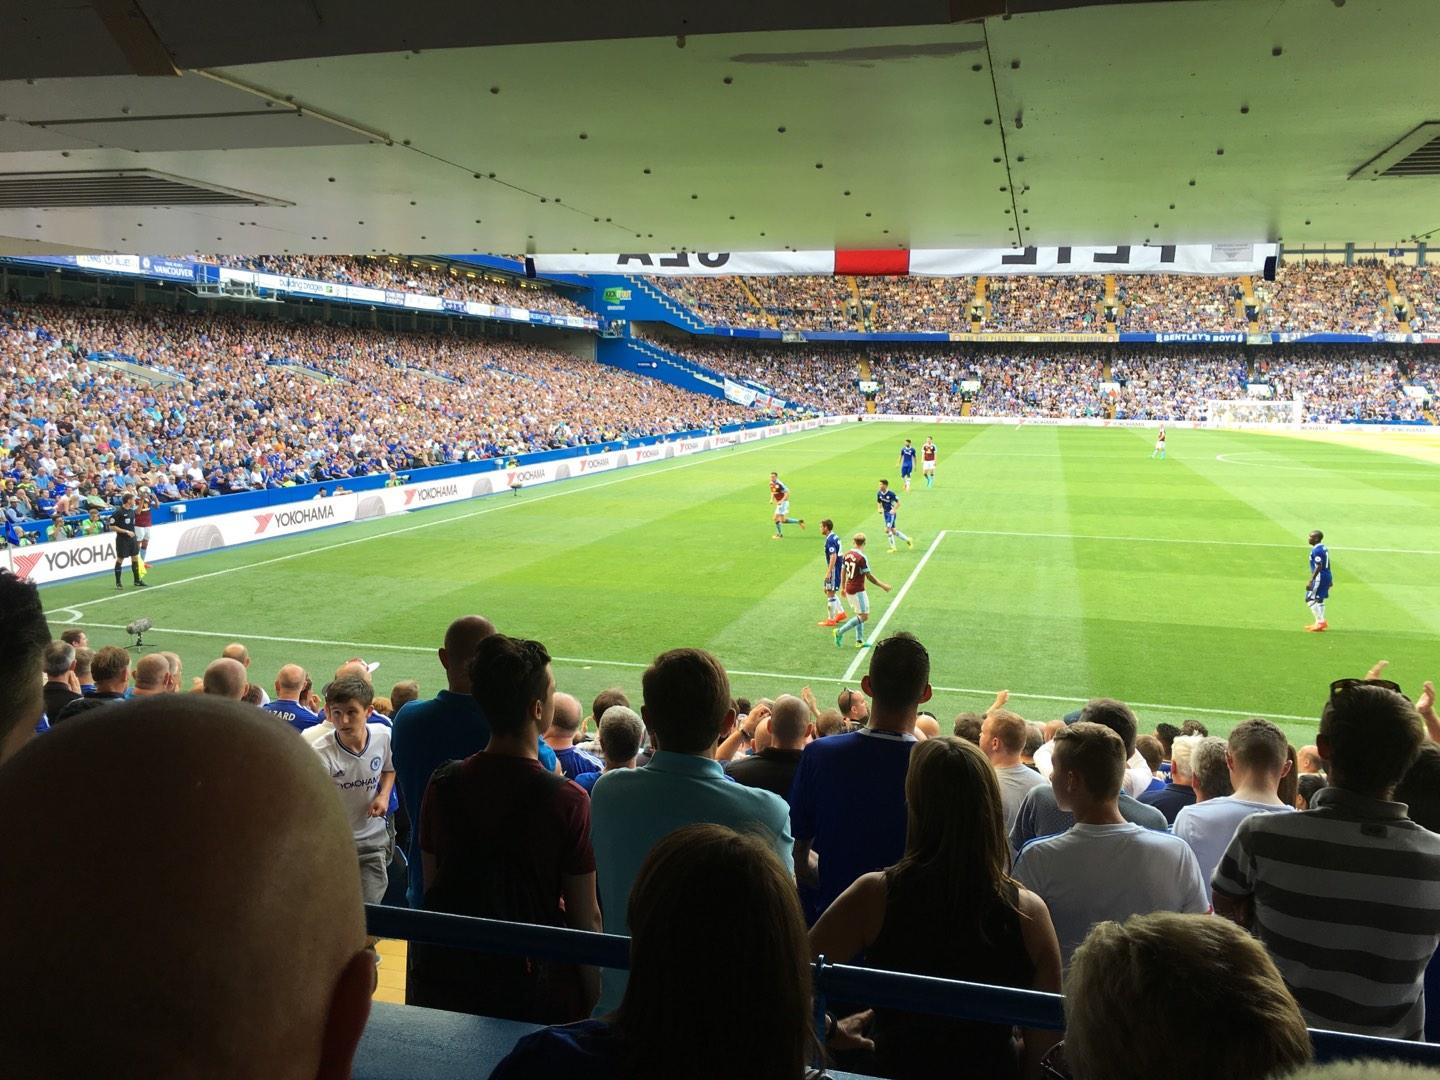 Stamford Bridge Section Shed End Lower 5 Row 15 Seat 145